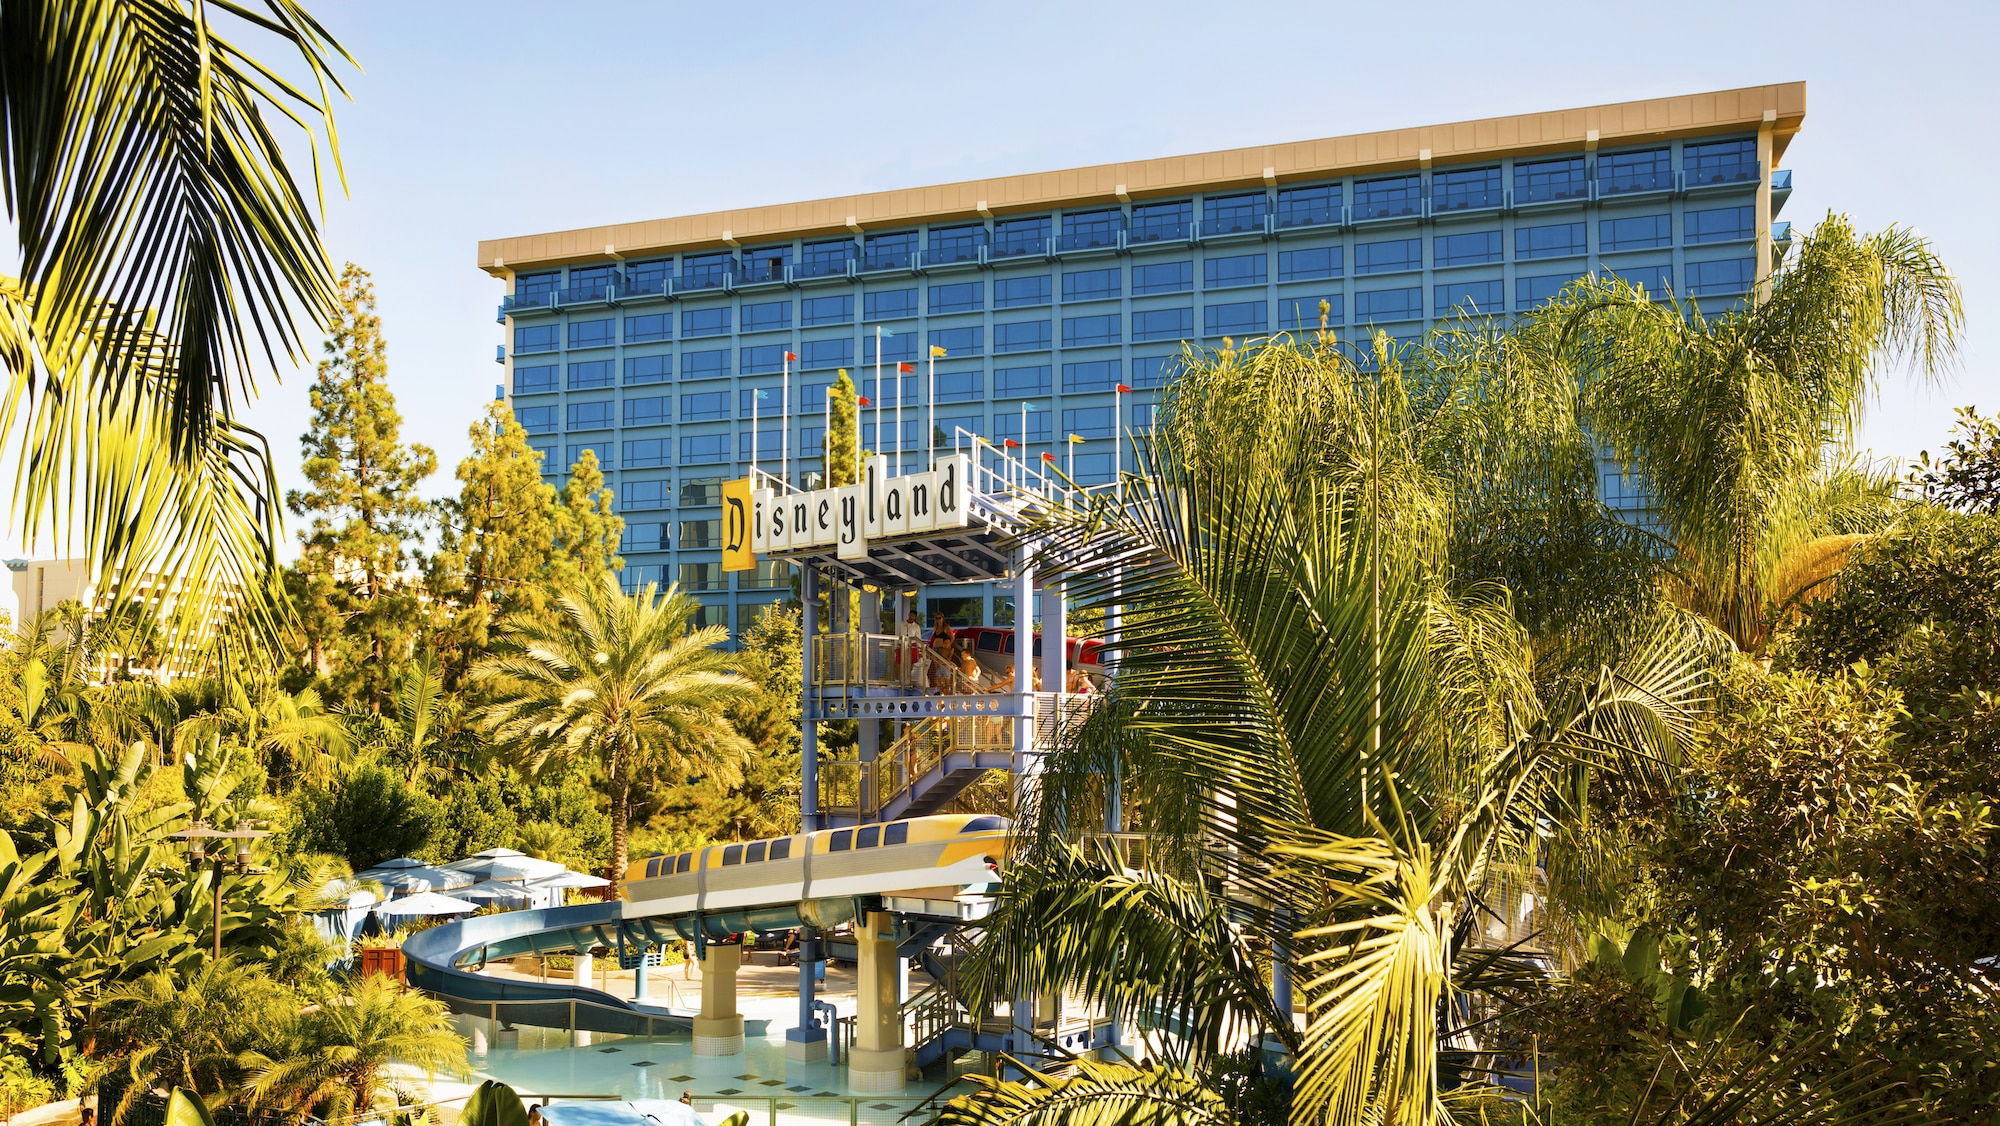 Image of exterior and the pool at the Disneyland Hotel.